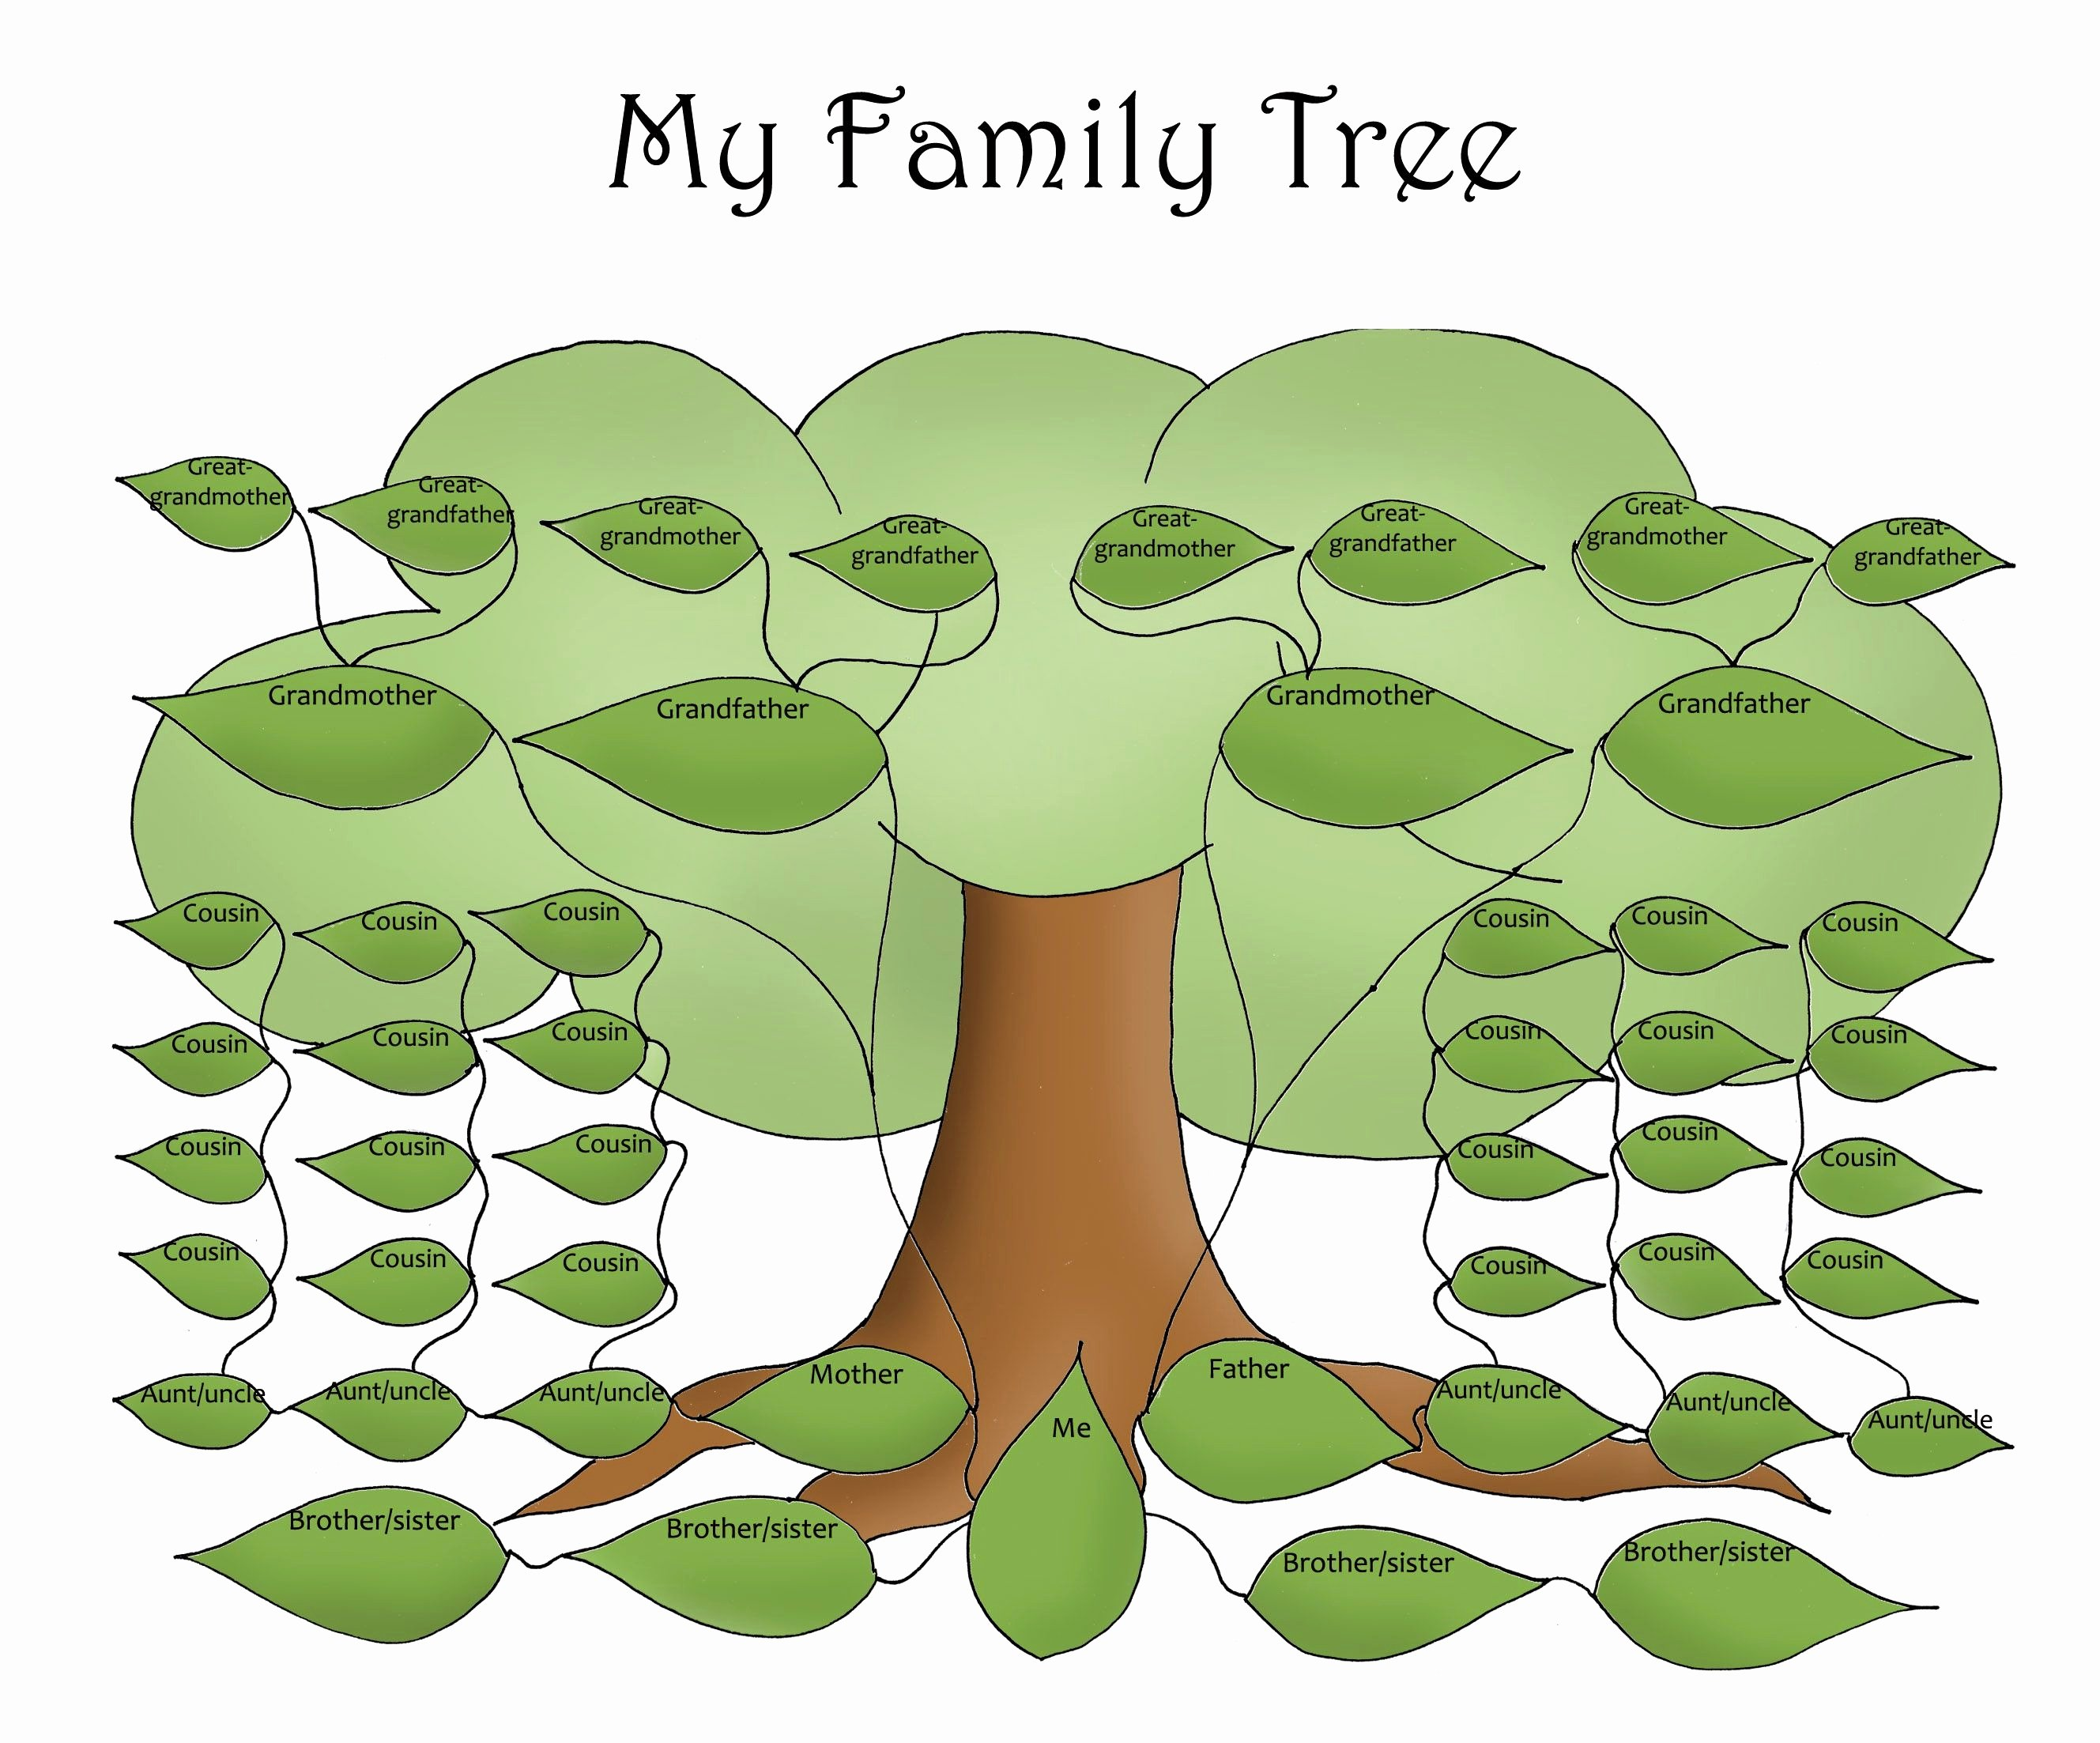 Free Editable Family Tree Templates Awesome Free Editable Family Tree Template Daily Roabox